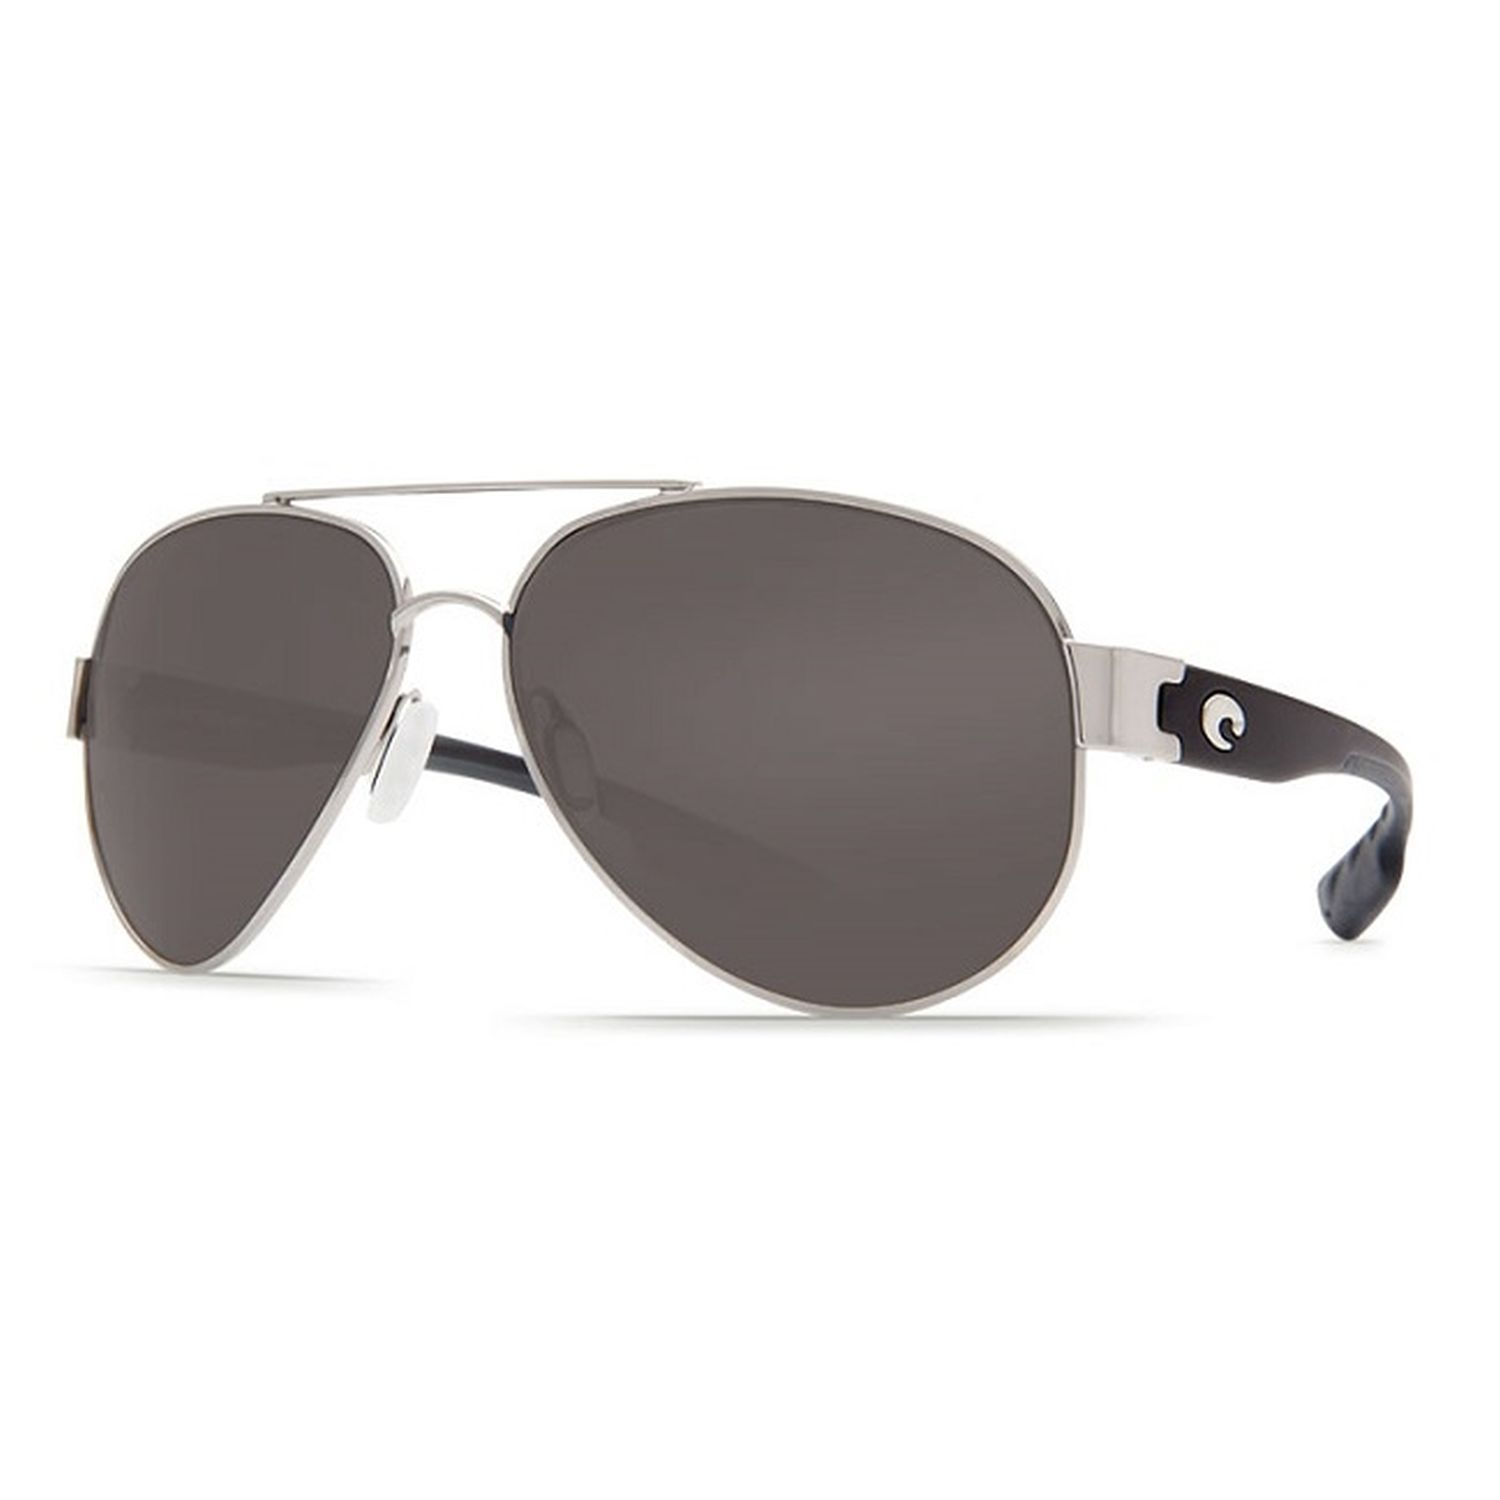 6d24f410c70 Costa Del Mar SO 21 OGGLP South Point Sunglasses 580G Frame ...